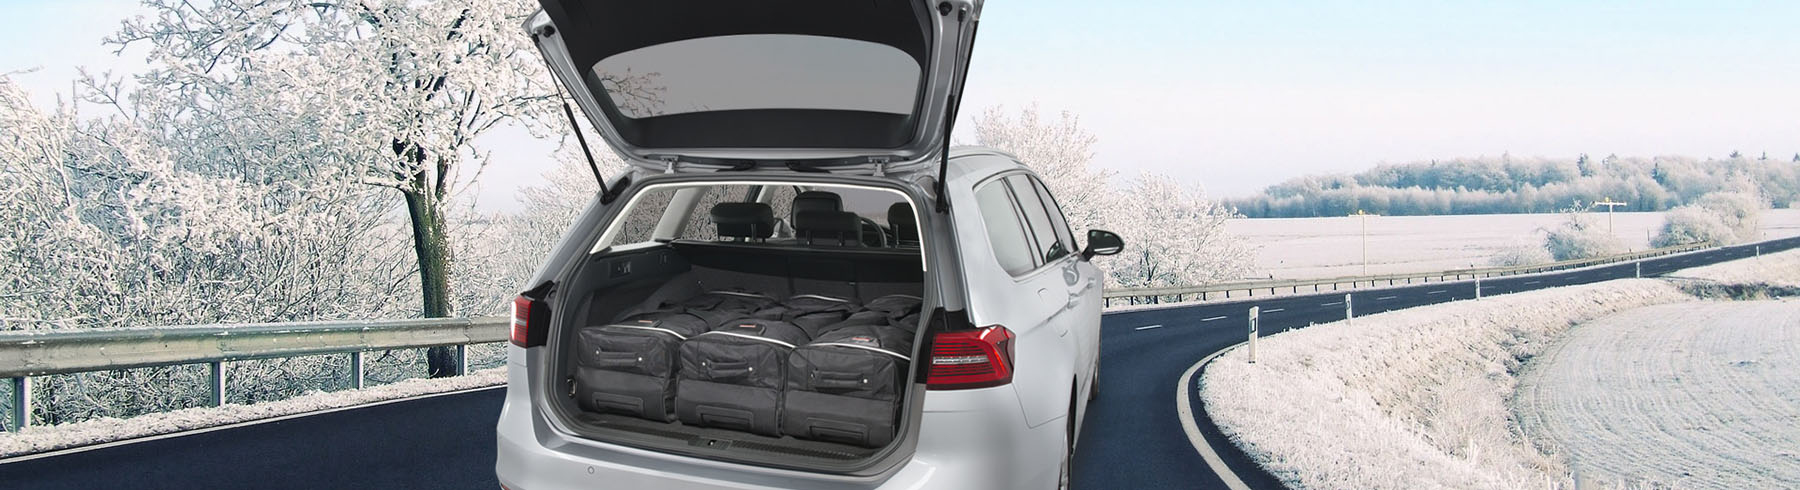 car-bags-new-design-winter-1